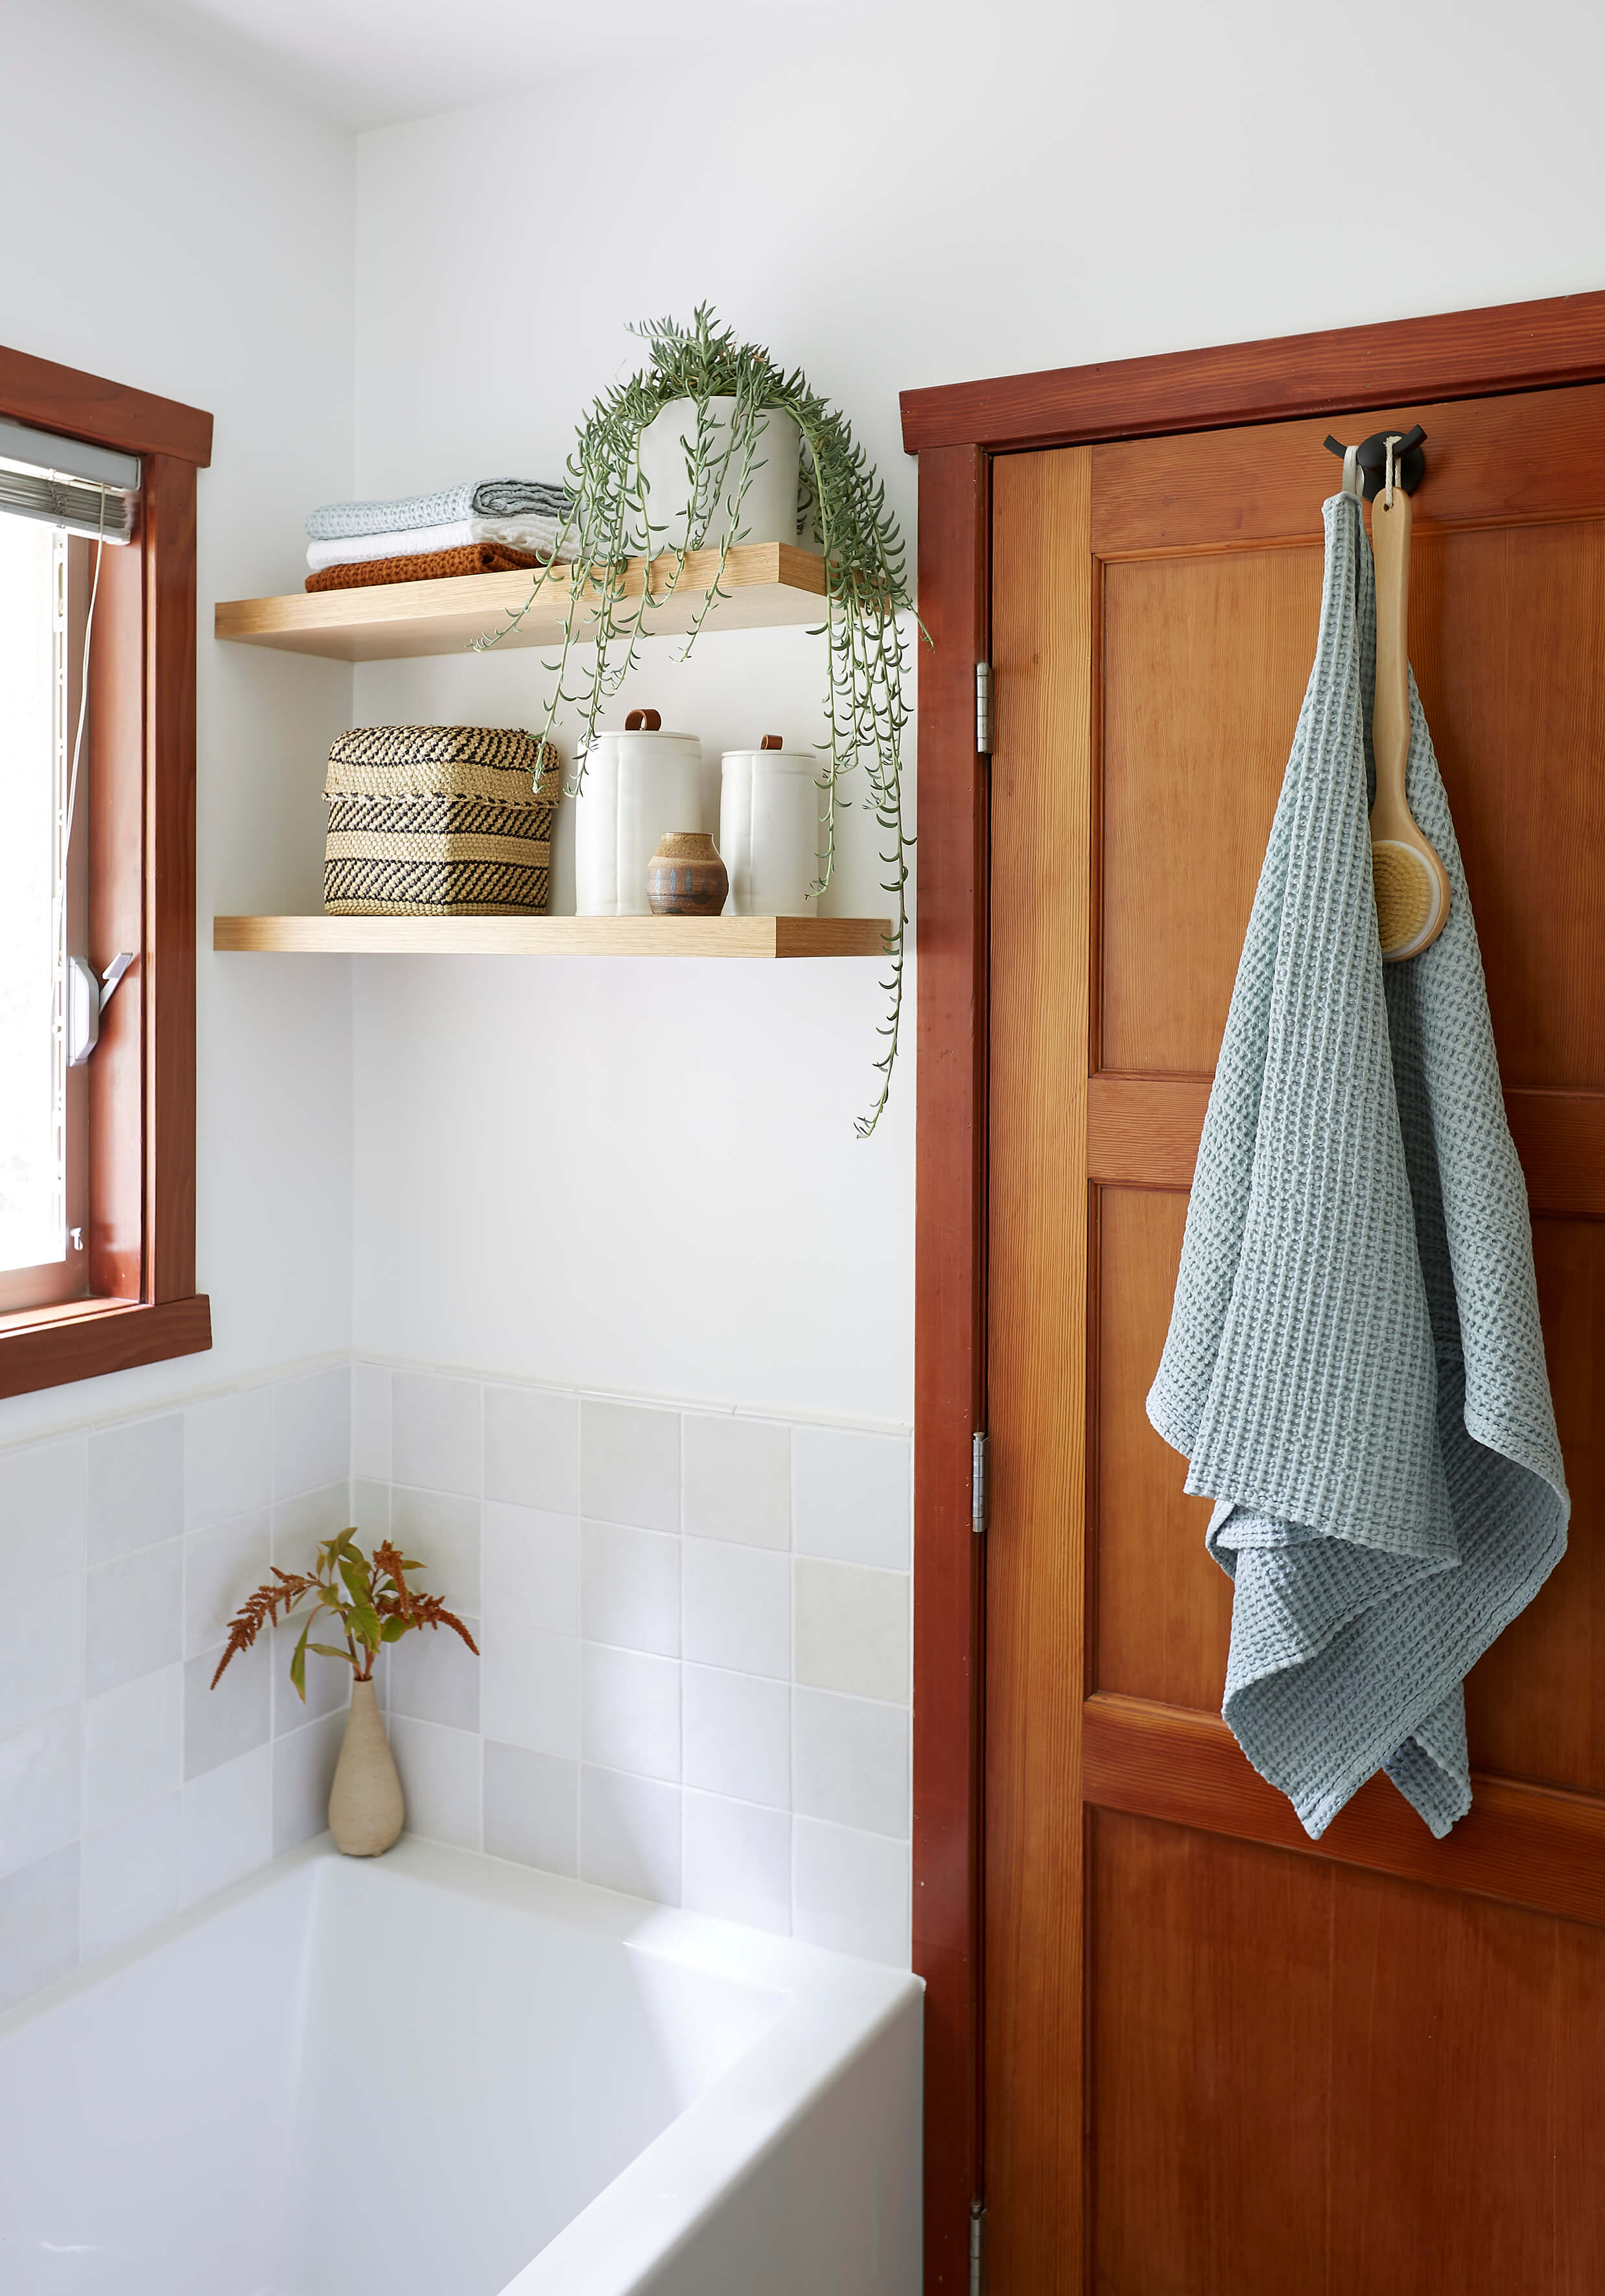 GINNY_MACDONALD_OAK_BATHROOM_SHELVES